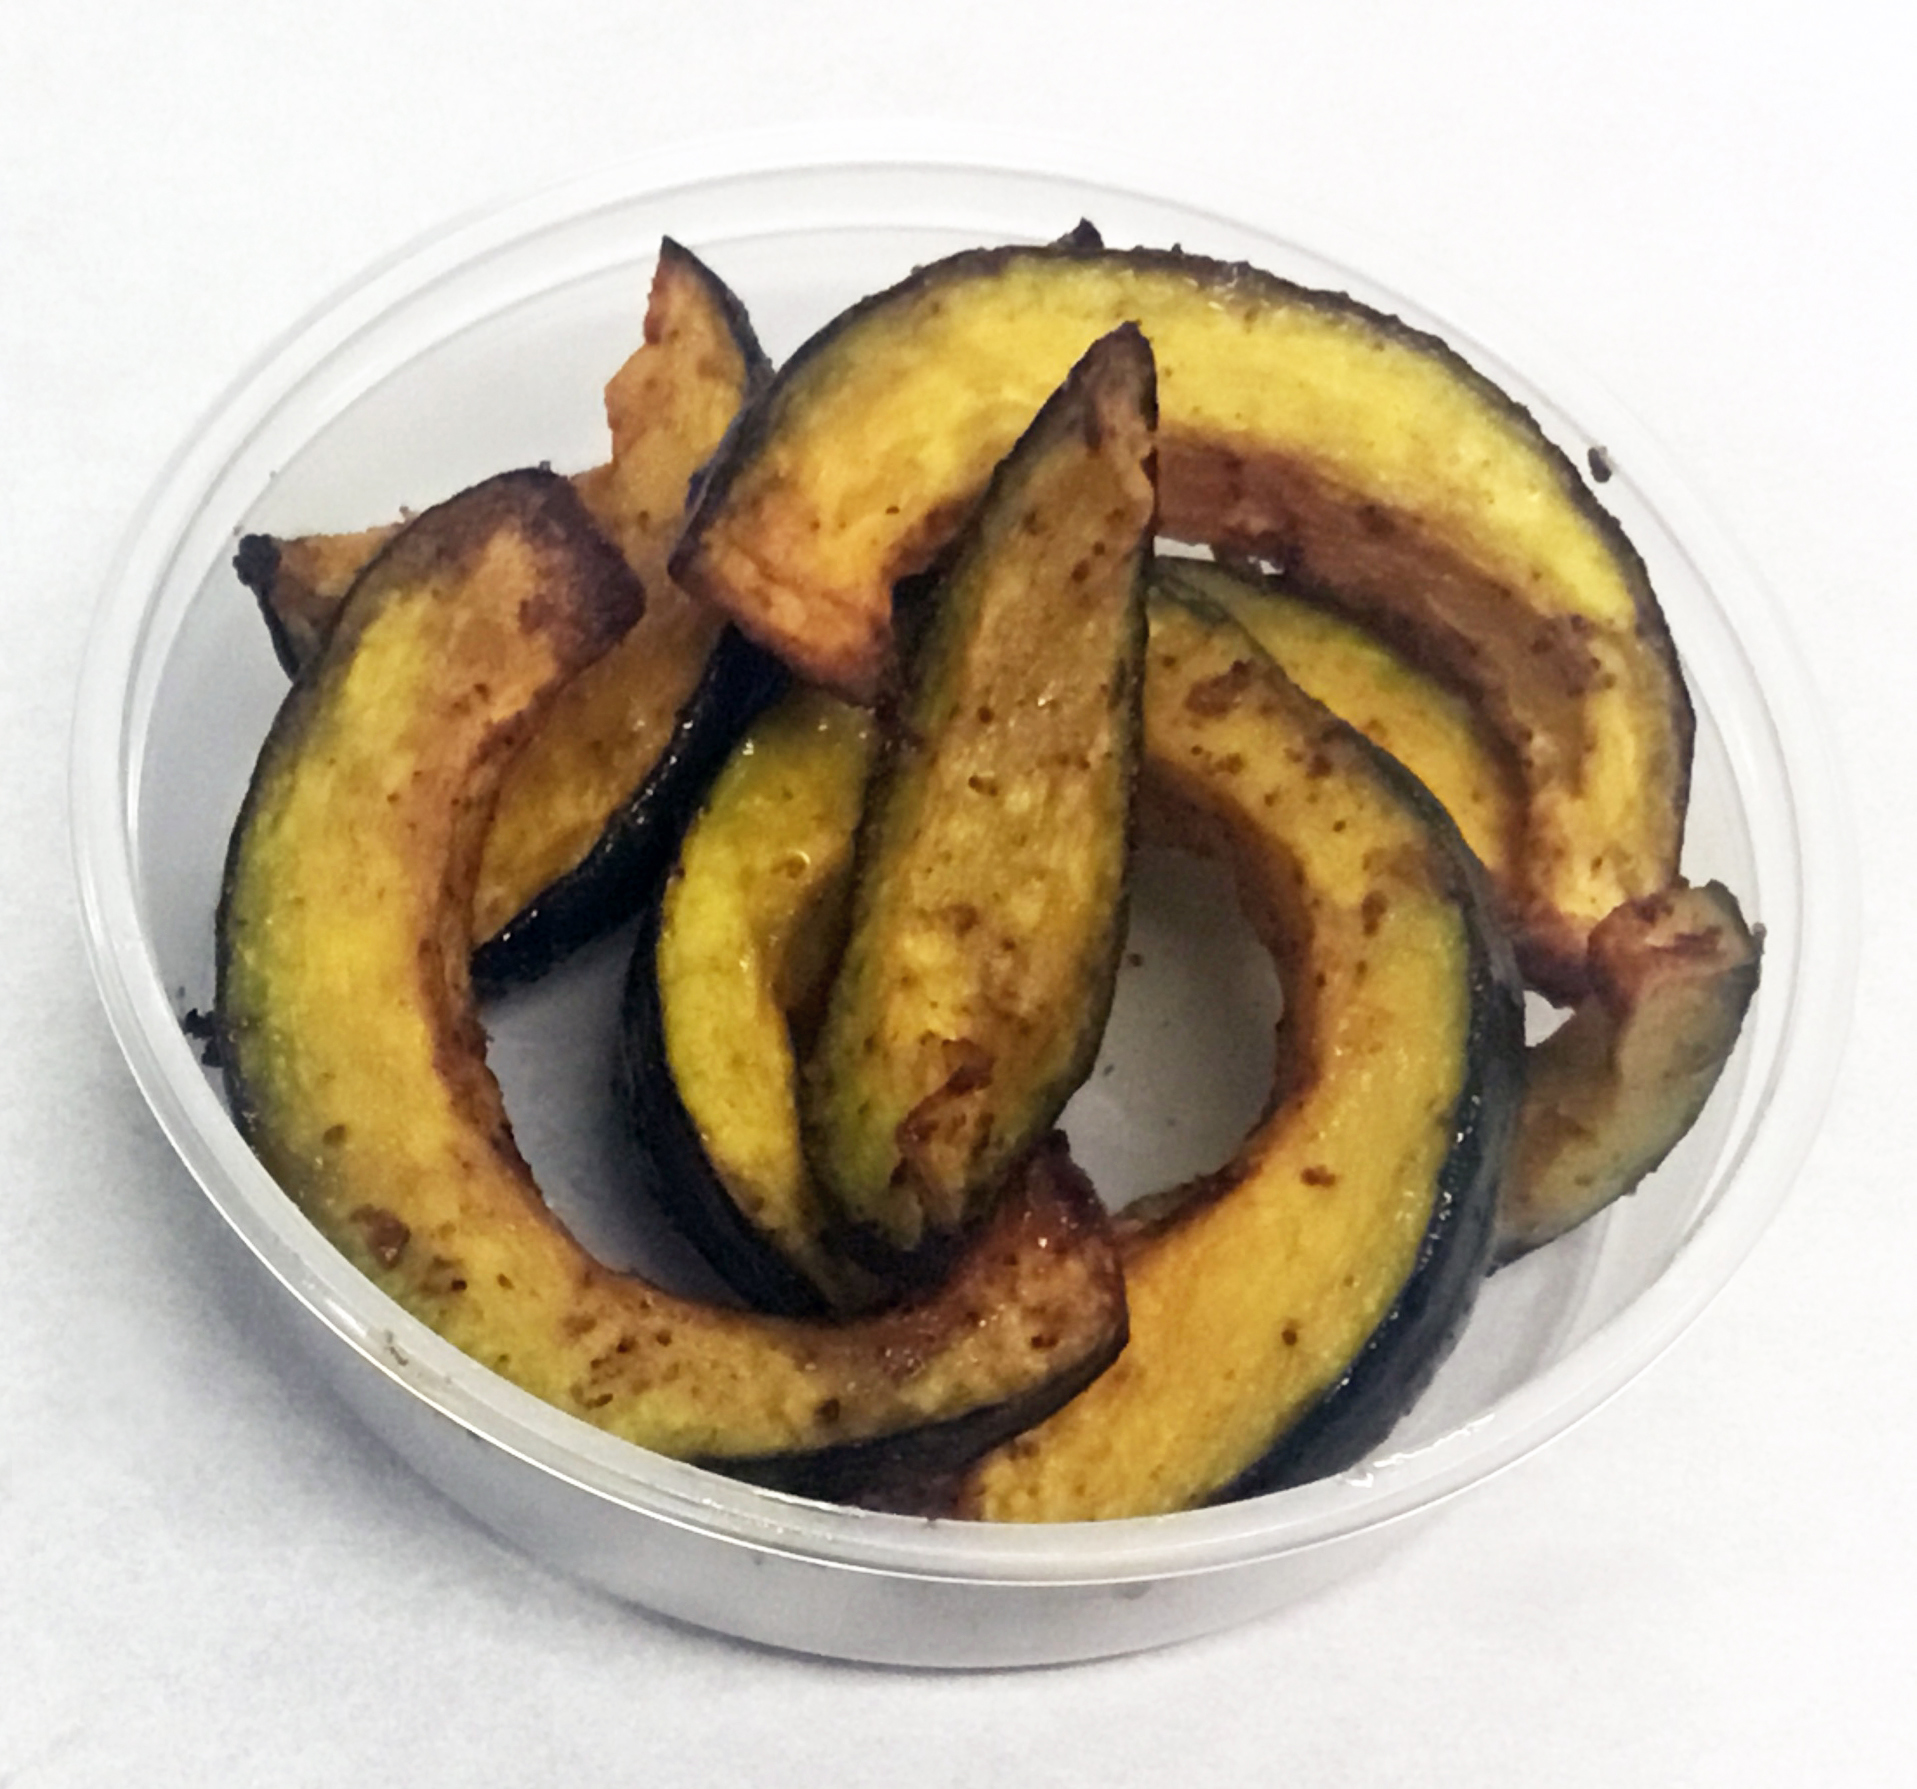 Baked kabocha squash with garlic and chili spices.